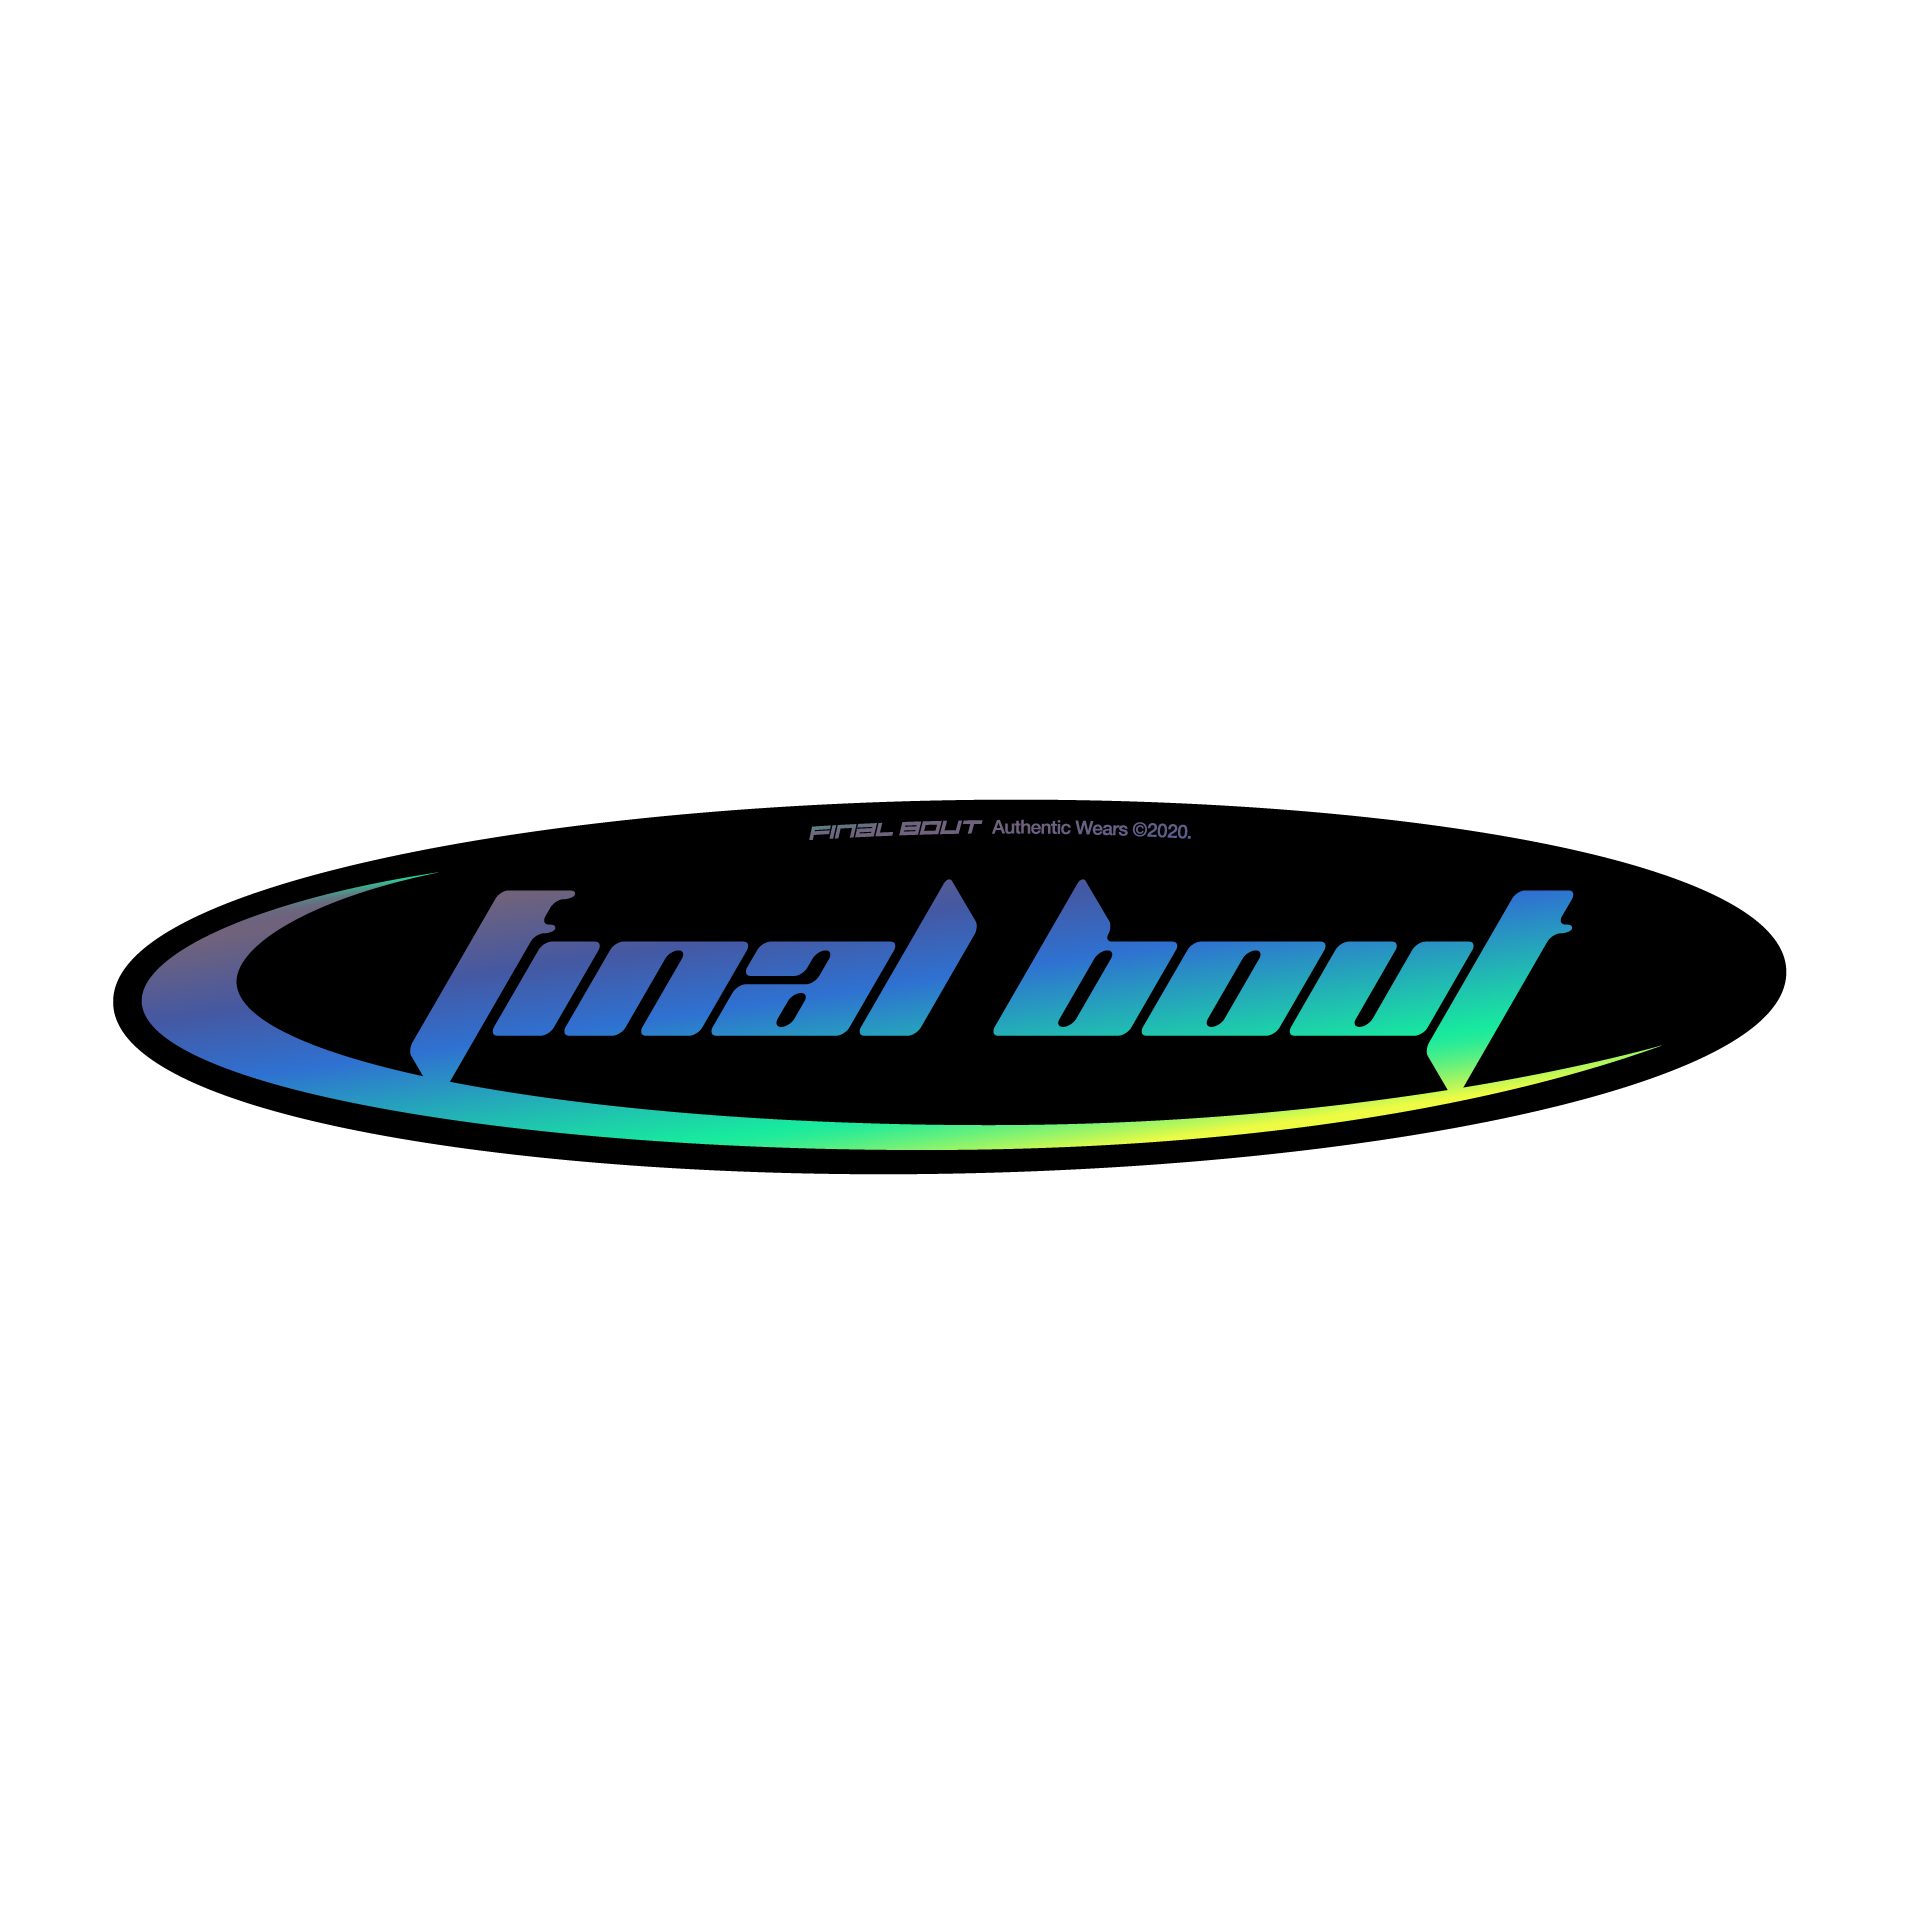 Final Bout Sticker - Techno [ Gold Oil-Slick ]